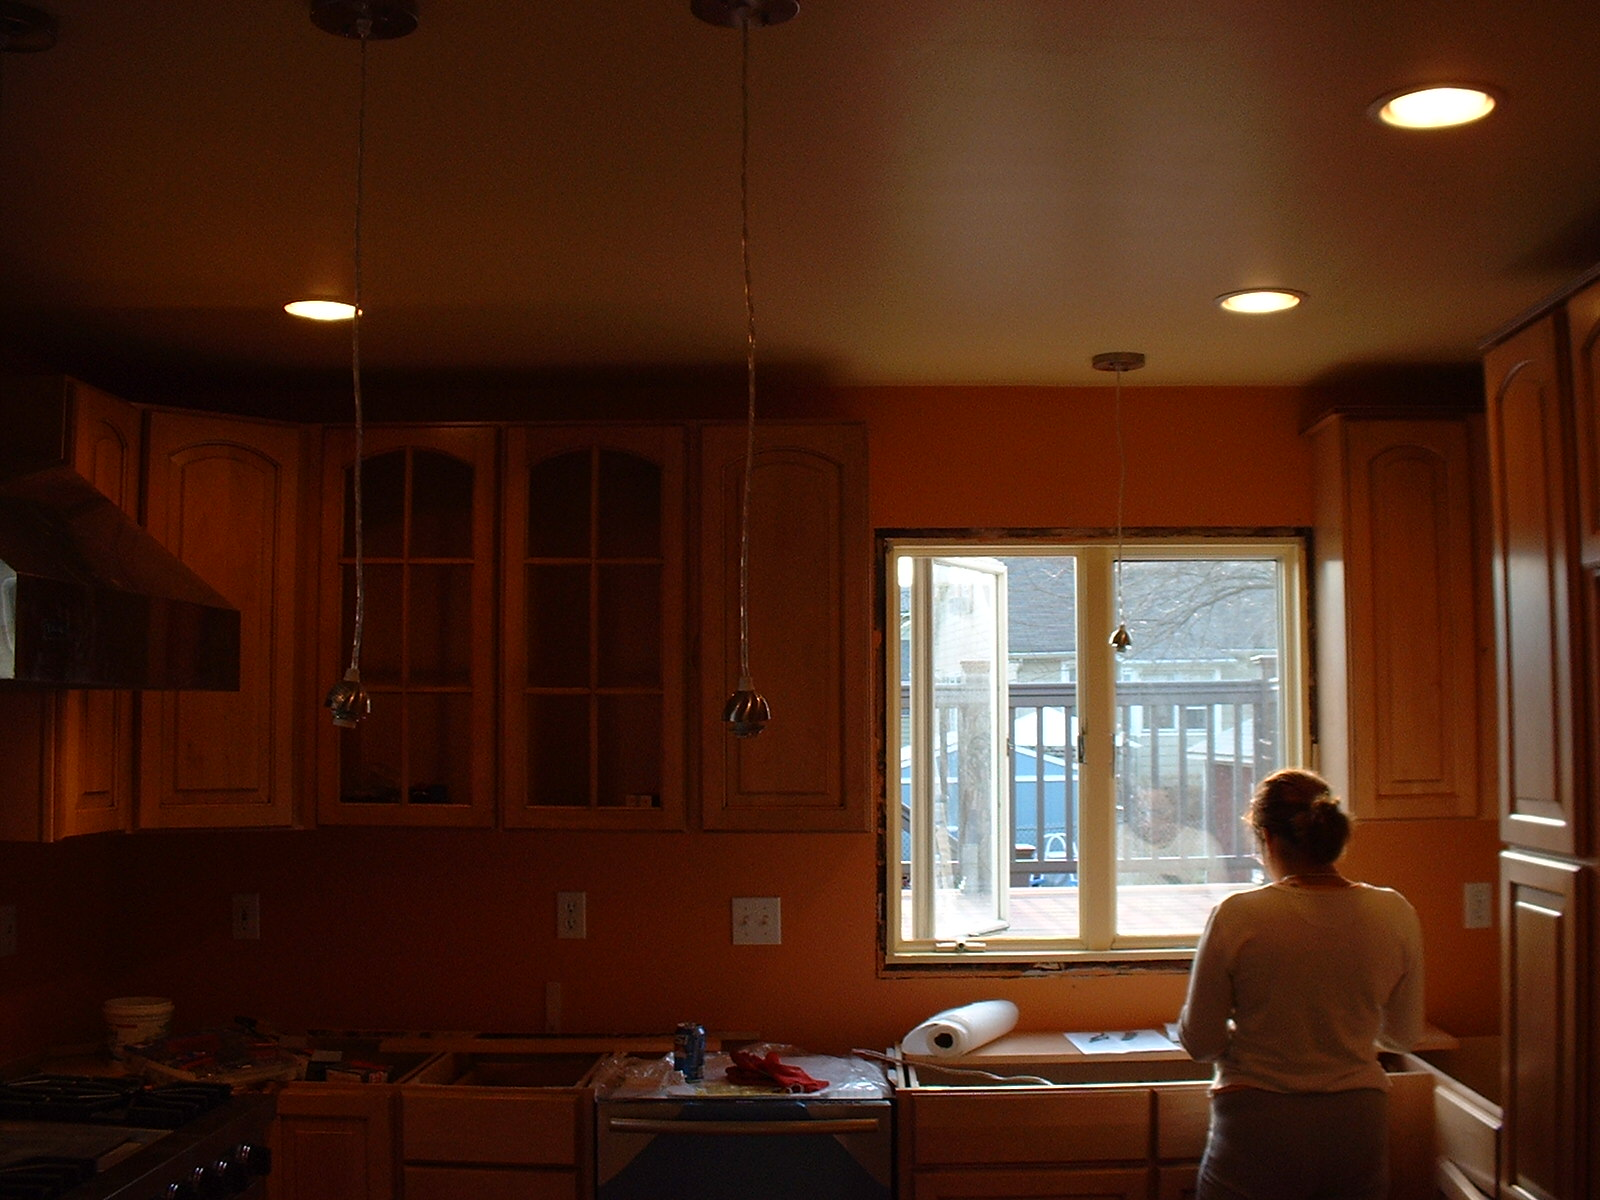 Here is Mrs. Reyes dreaming about her first cooked meal in her new kitchen.